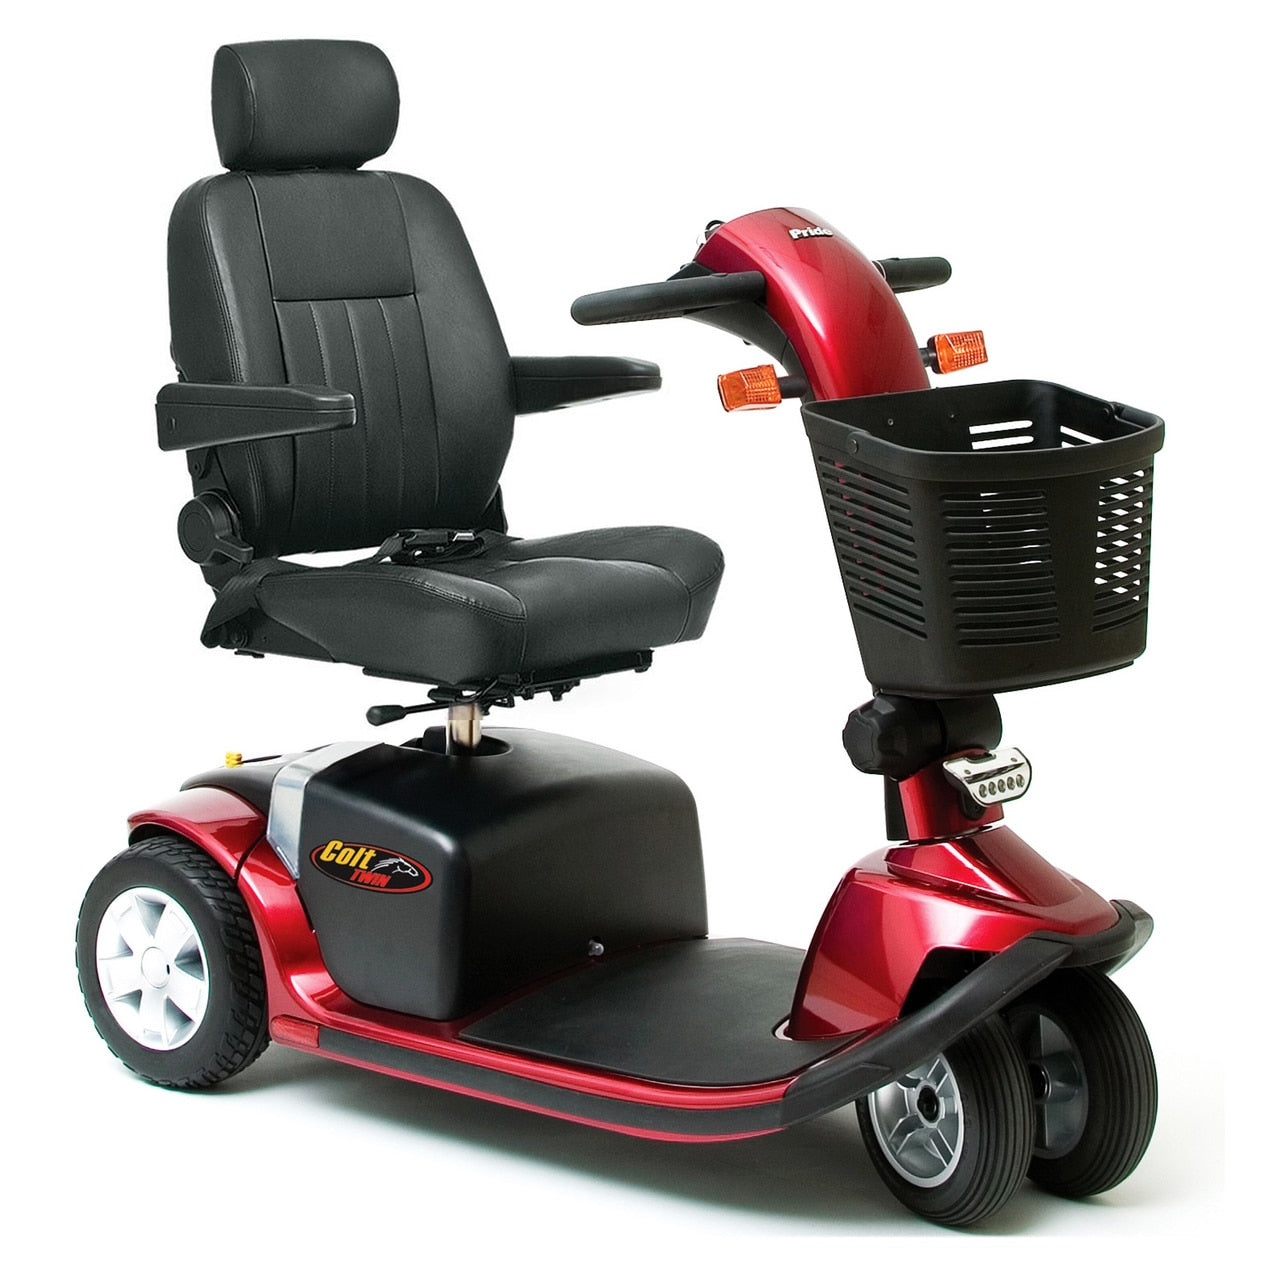 Pride Colt Twin High Seat Mid-Size 4mph Scooter